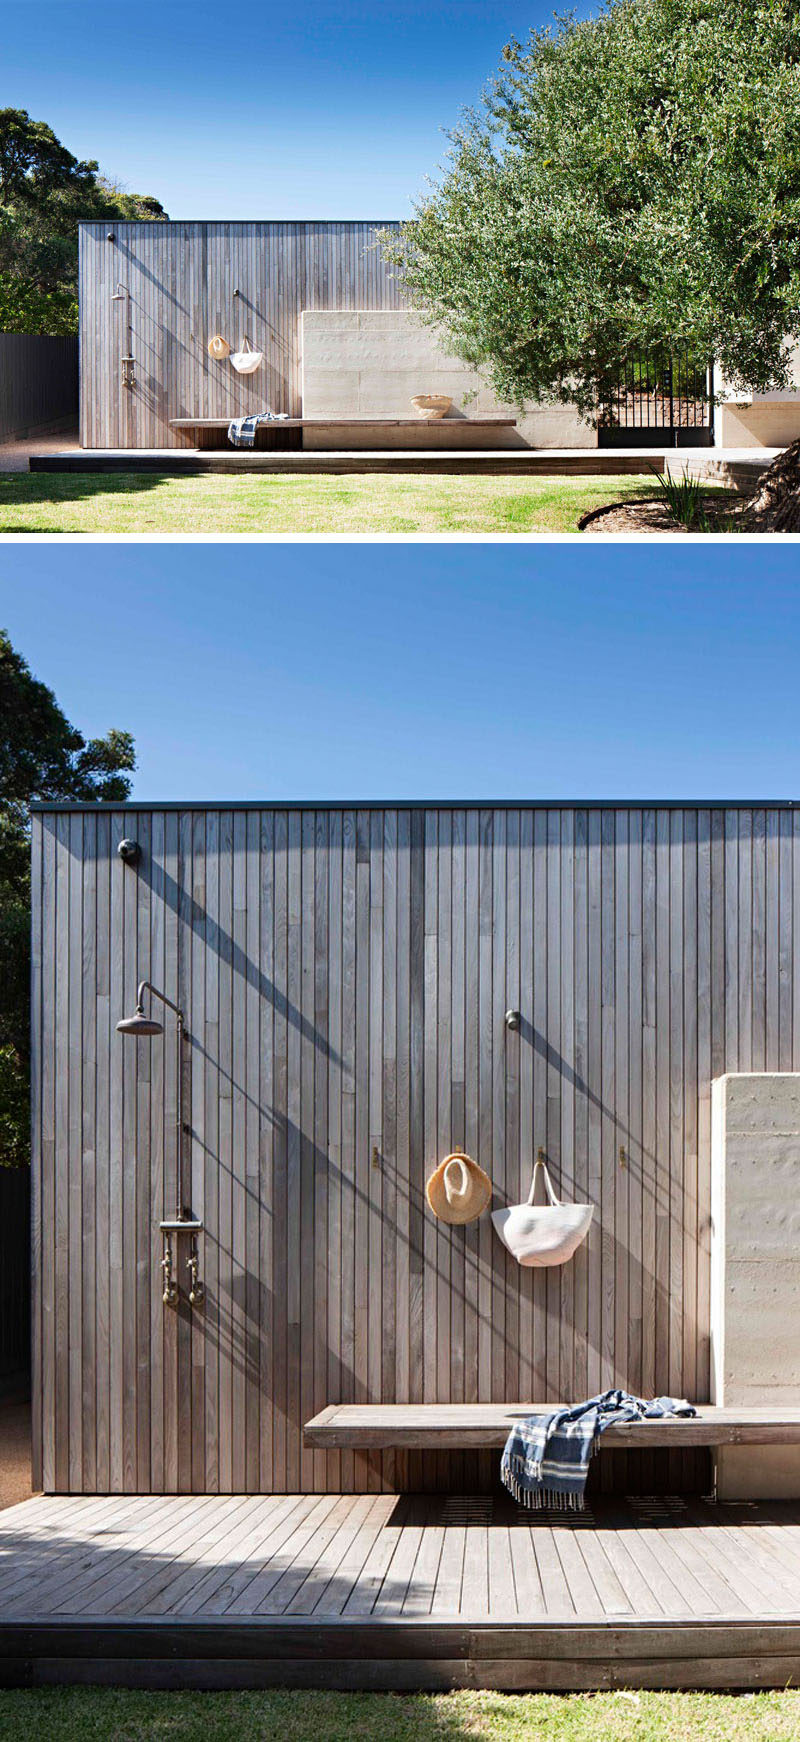 Located Along The Back Wall Of This Modern Garage Is A Built In Bench,